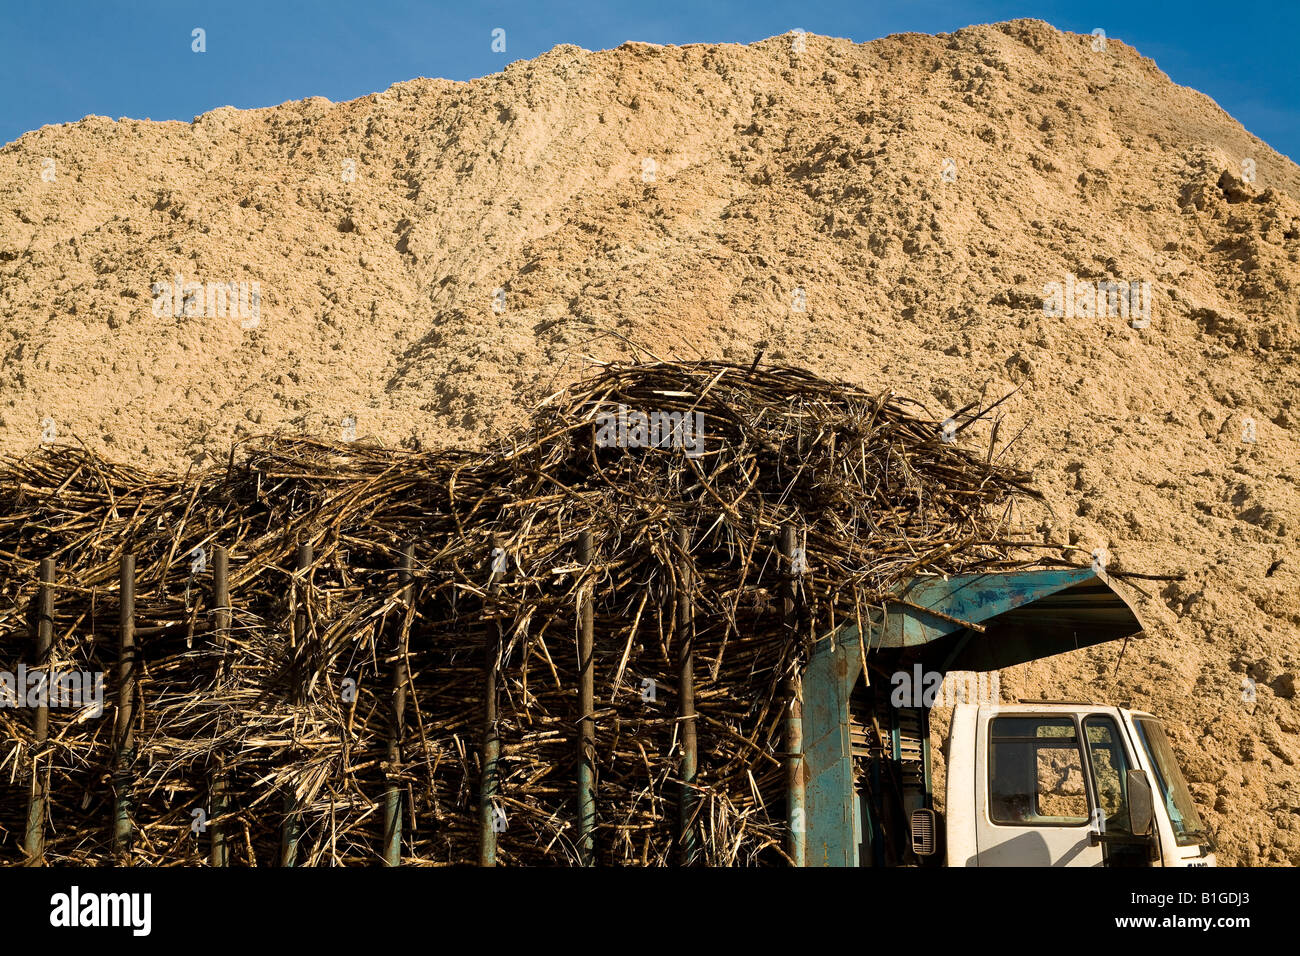 Truck loaded with sugarcane wait in line for unloading at Ester ethanol Plant in front of pile of sugarcane bagasse - Stock Image